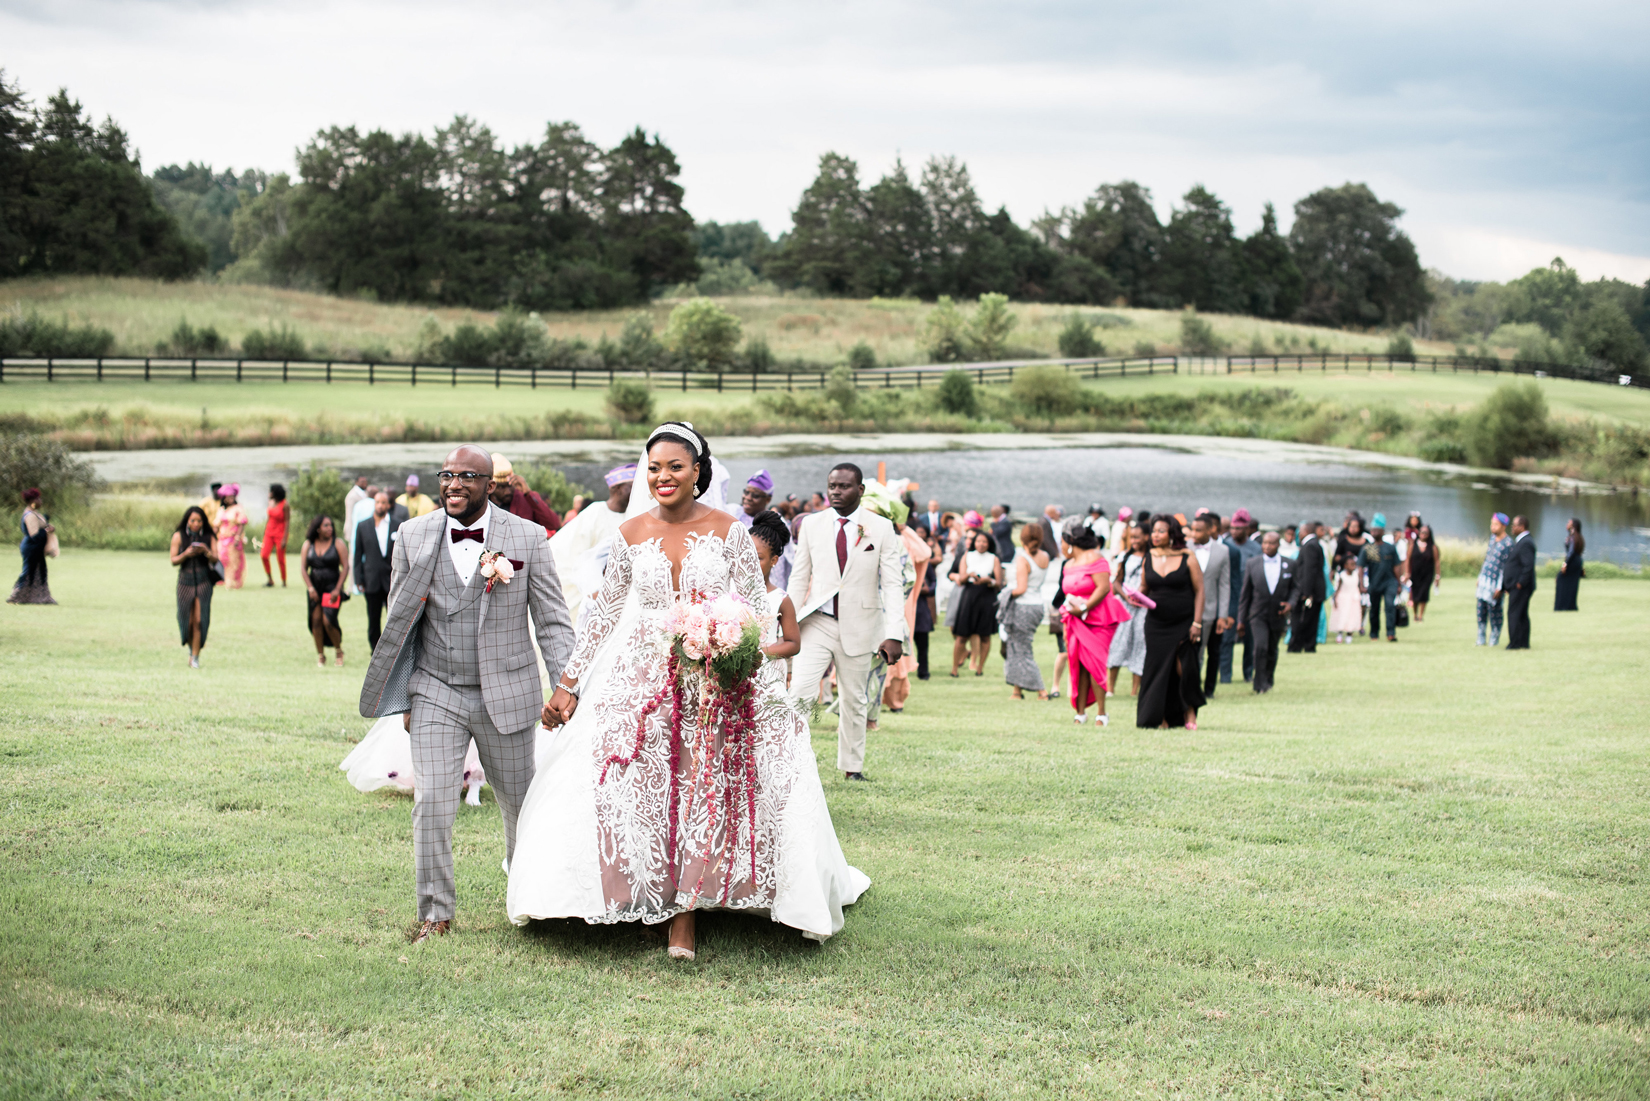 bride and groom walk away from ceremony with guests behind them